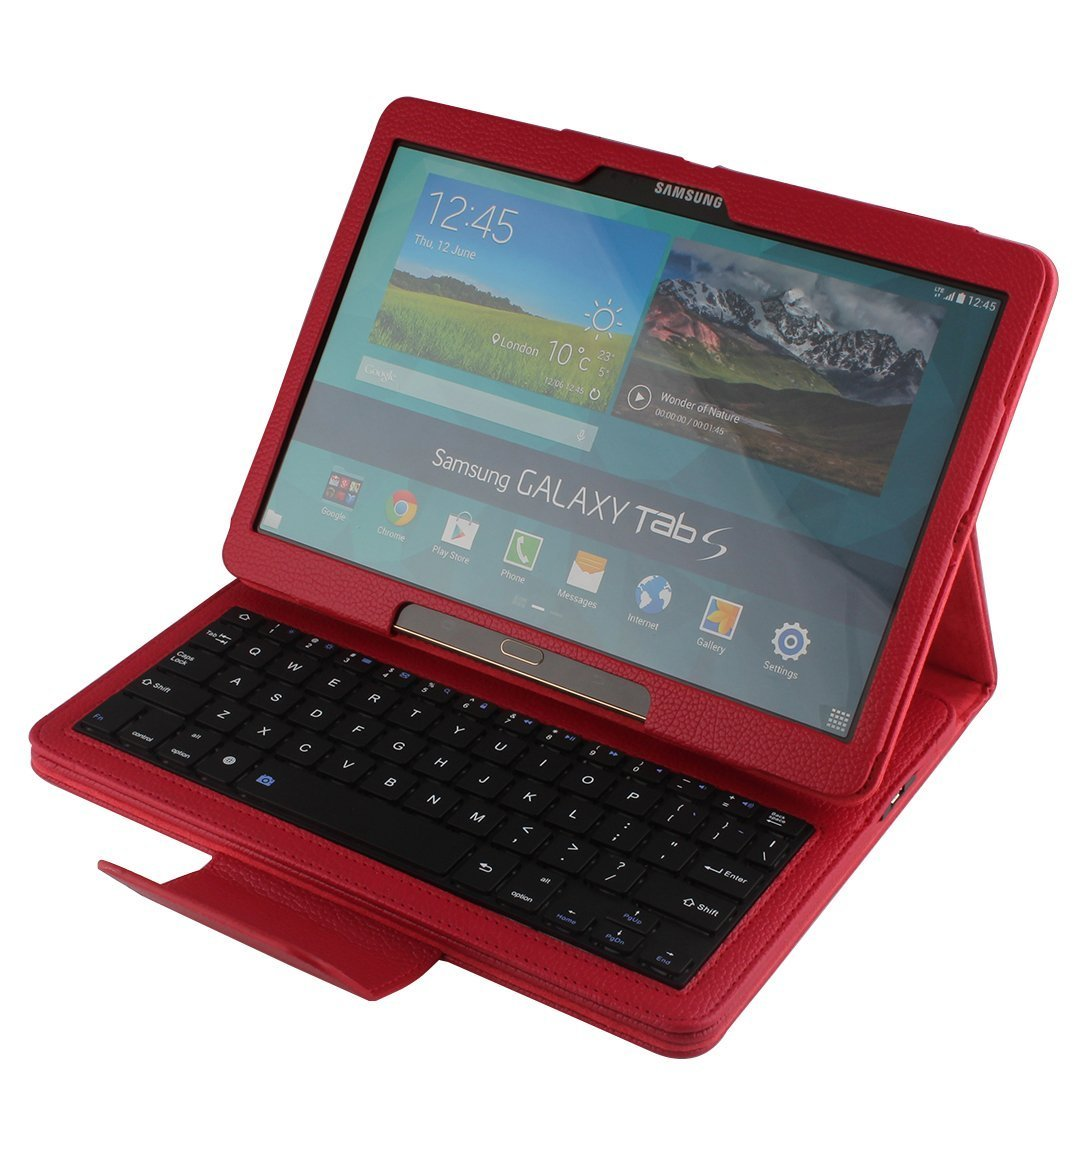 DEENOR Samsung Galaxy Tab S 10.5 Case with Bluetooth Keyboard   Ultra Slim Detachable Wireless Bluetooth Keyboard Portfolio Leather Case Cover for Samsung Tab S 10.5  Inch SM T800 SM T805 Tablet (RED)Customer review and more description